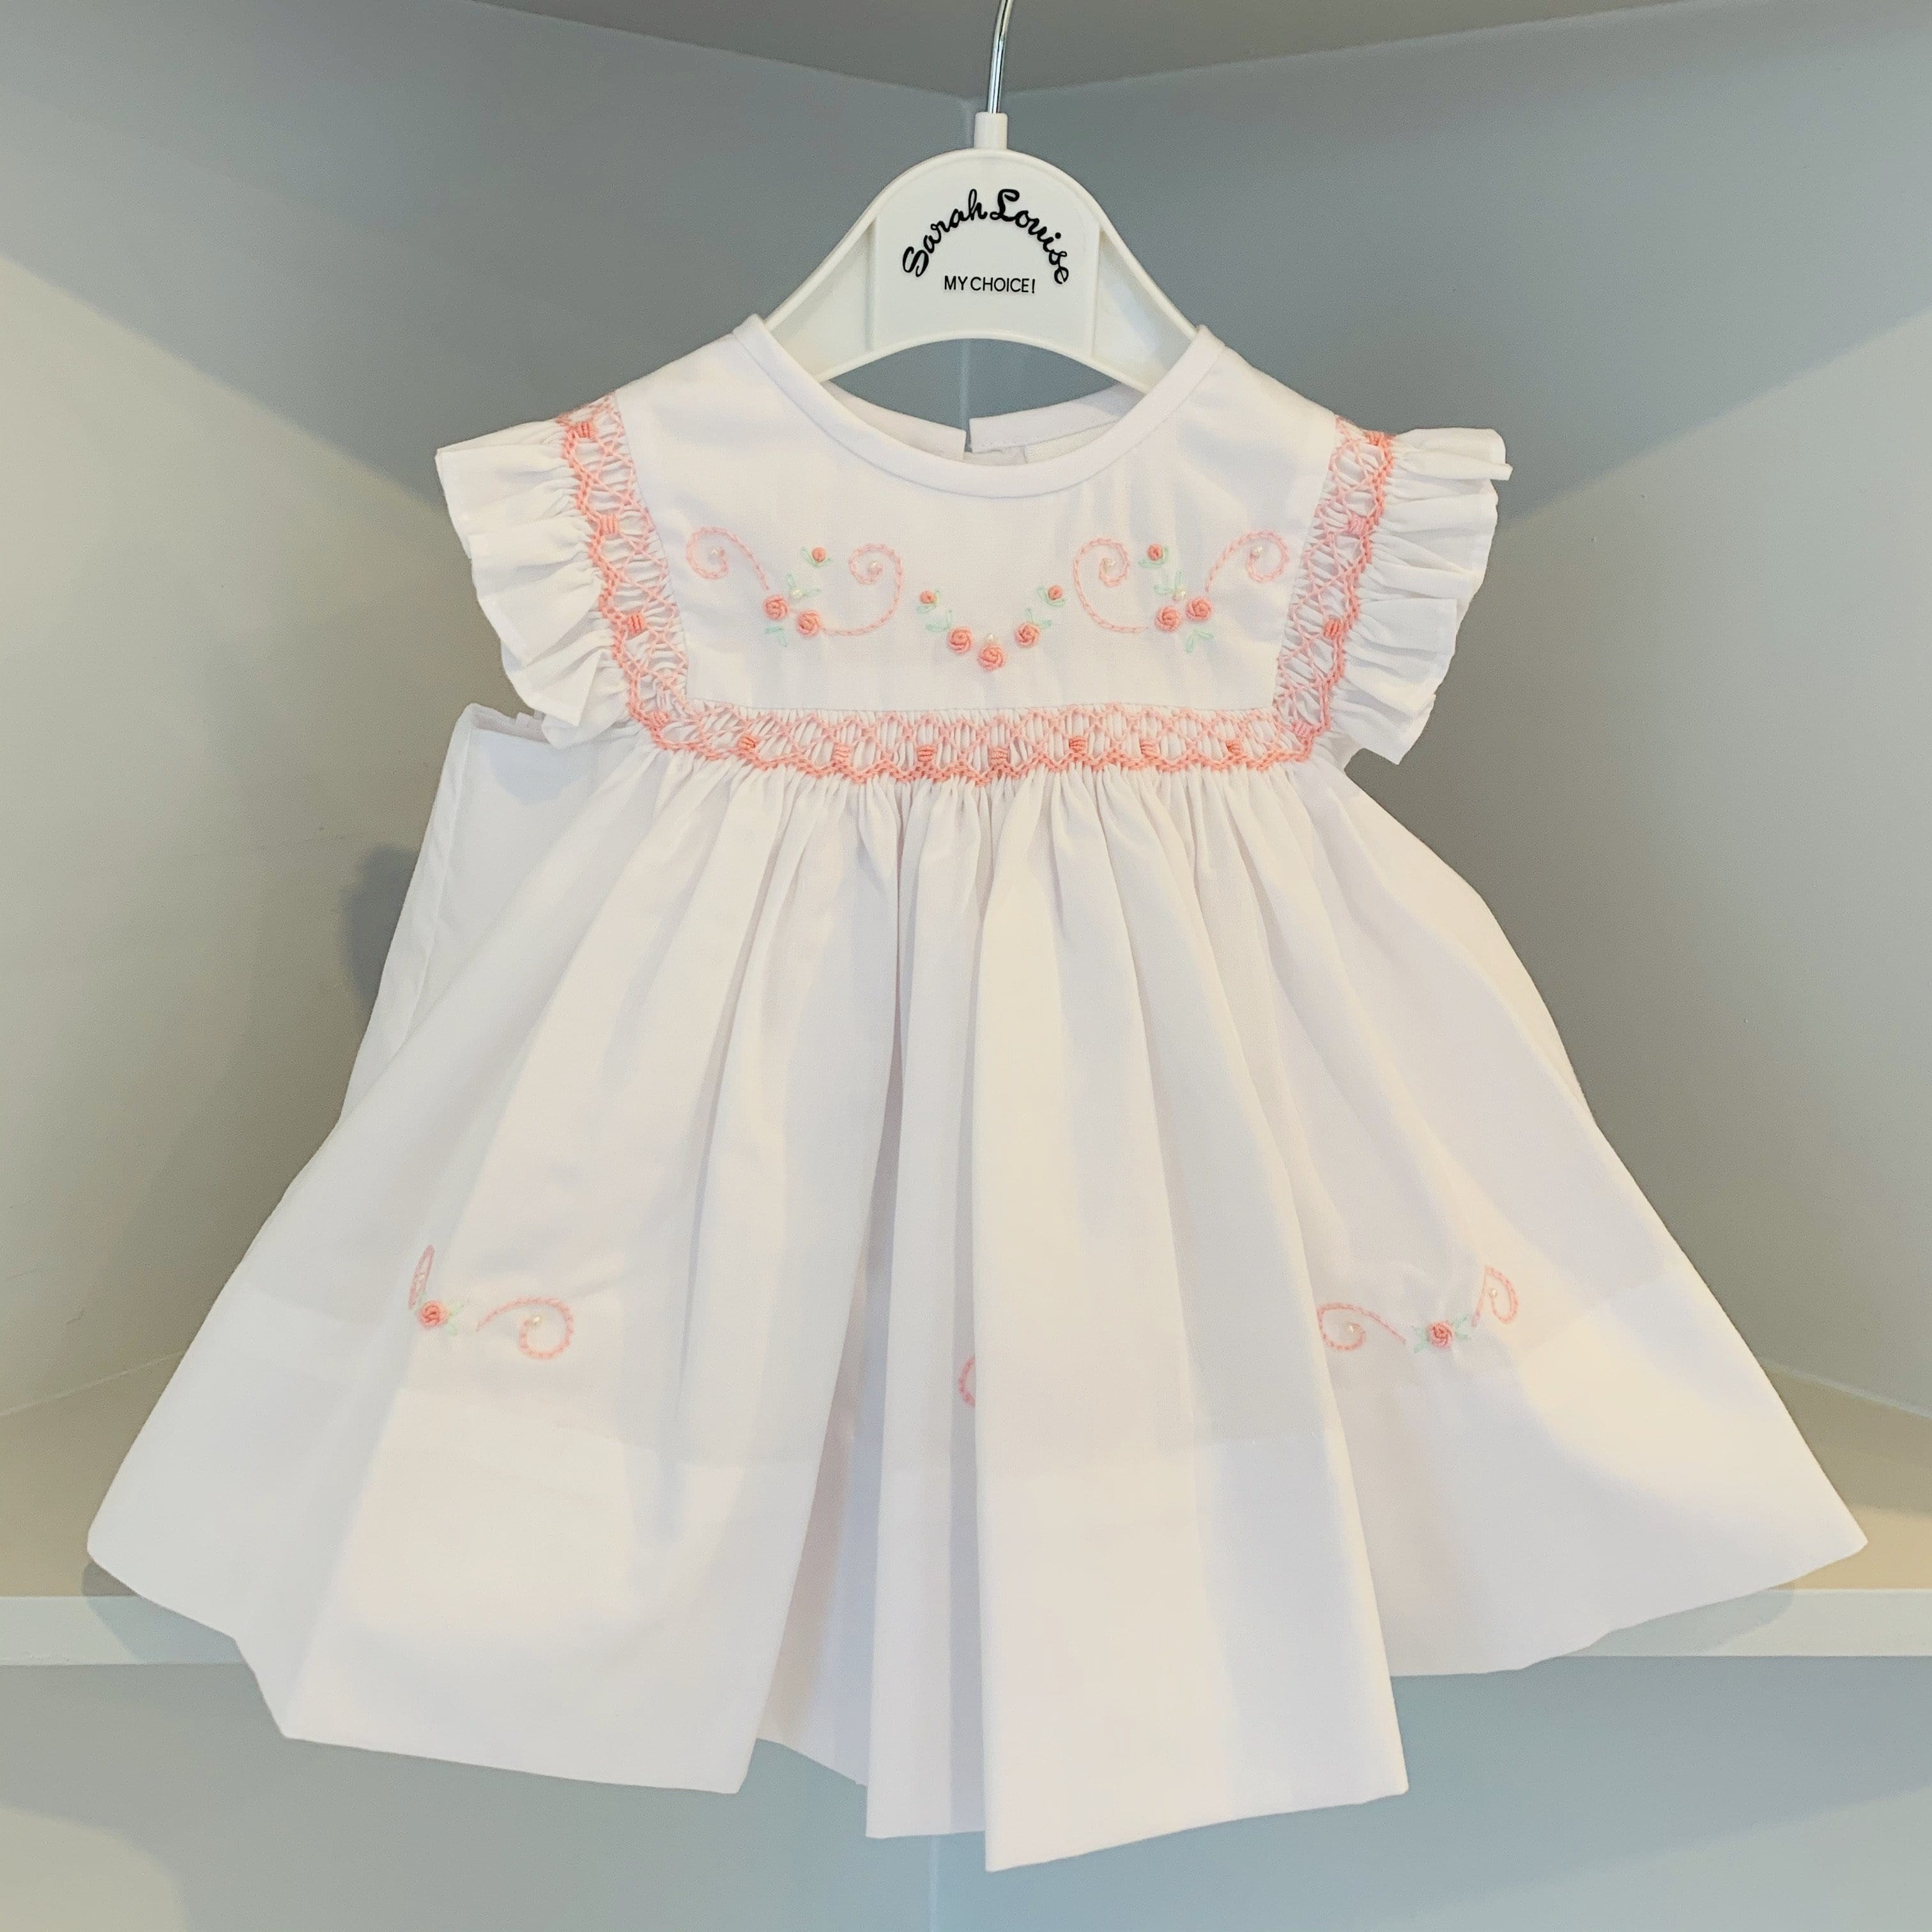 SARAH LOUISE WHITE / PINK SMOCKED DRESS